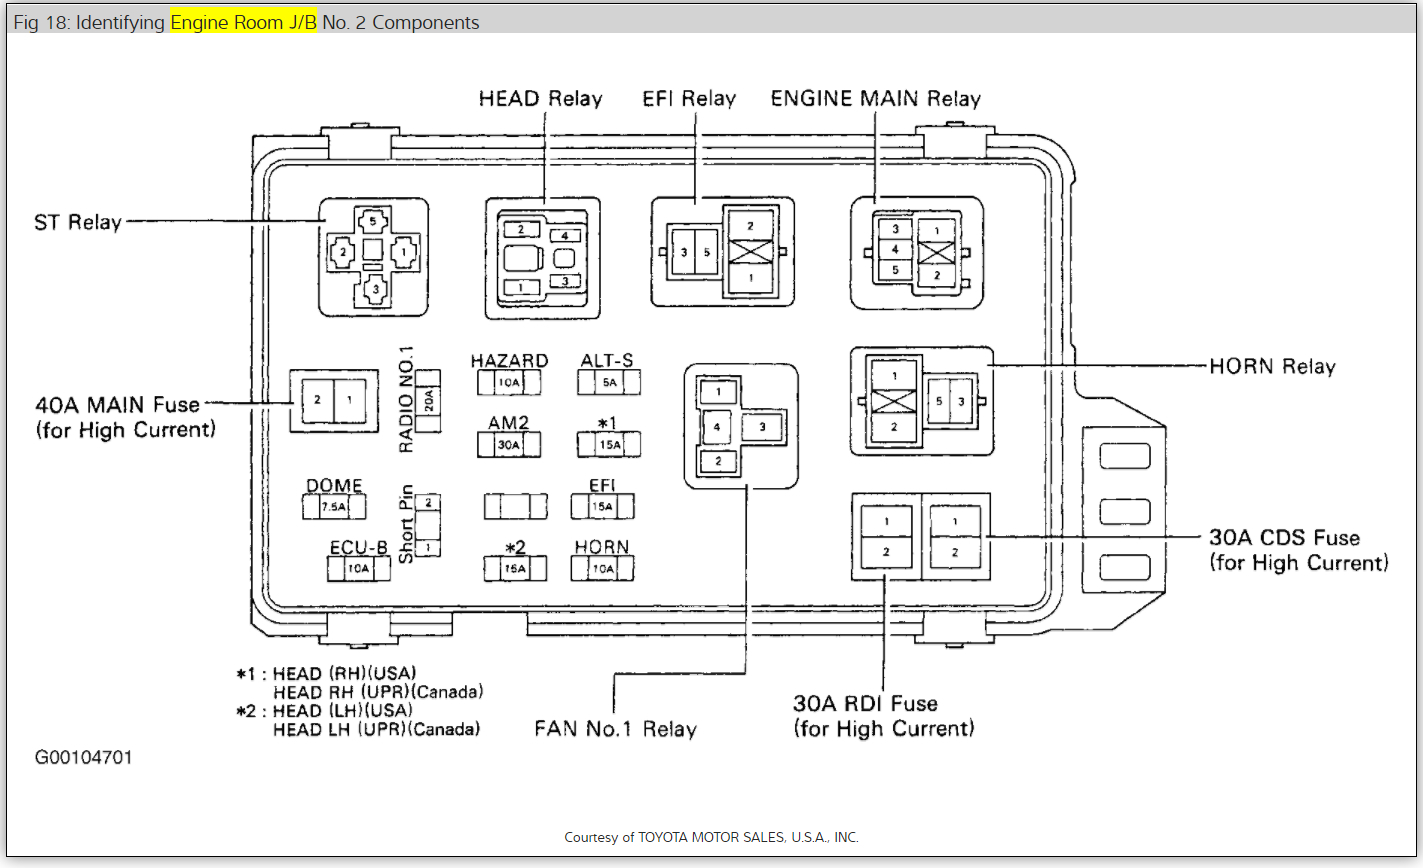 Maxresdefault together with Toyota Prius C L Cyl Ffuse Interior Part as well Toyota Camry Fuse Box Diagram as well Toyota Camry Engine  partment Fuse Diagram moreover Original. on toyota camry fuse box diagram